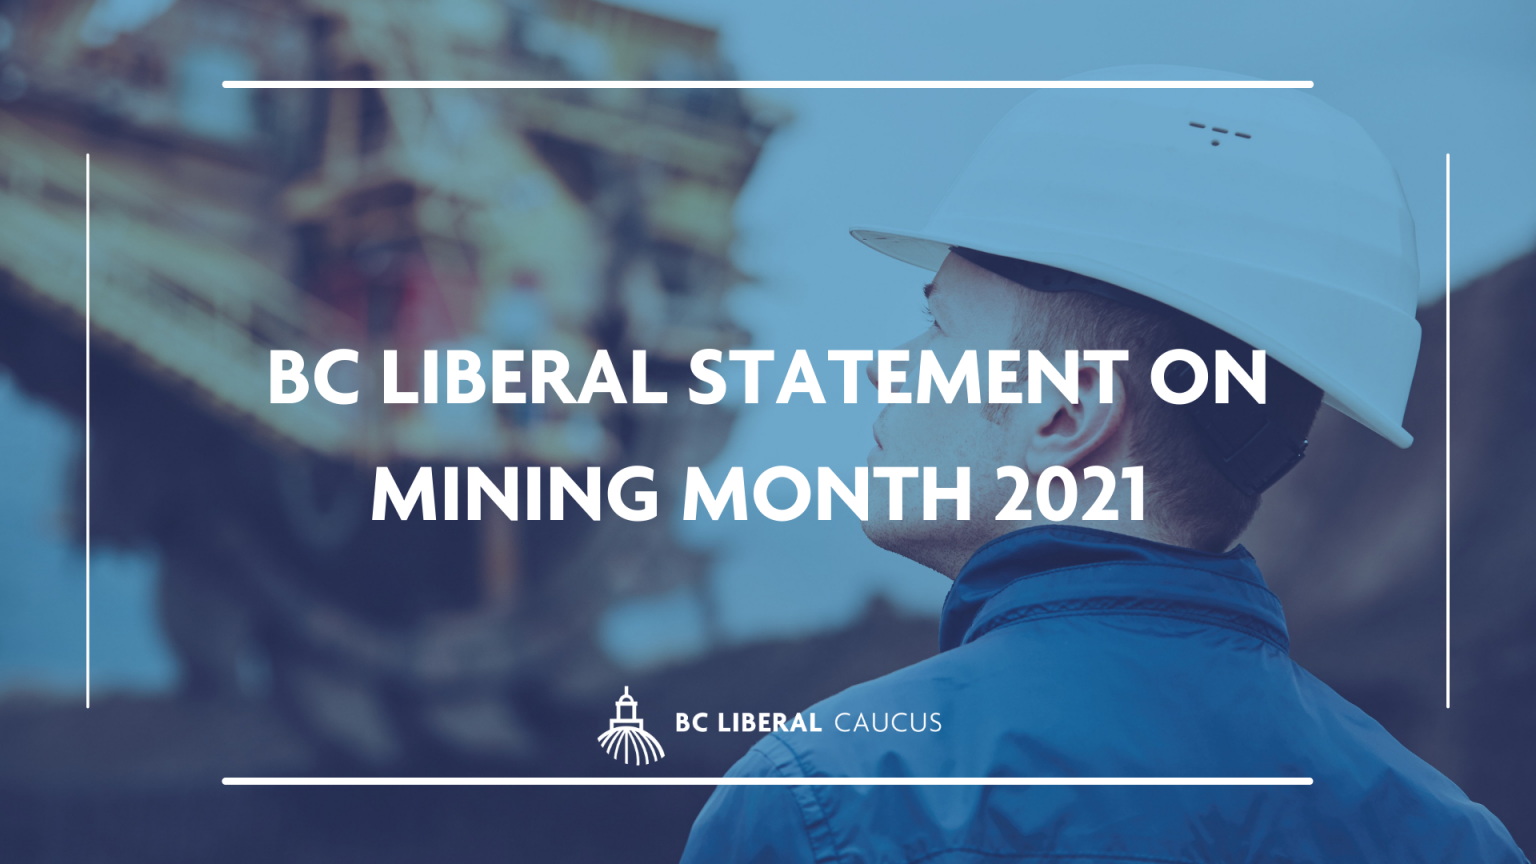 BC Liberal statement on Mining Month 2021